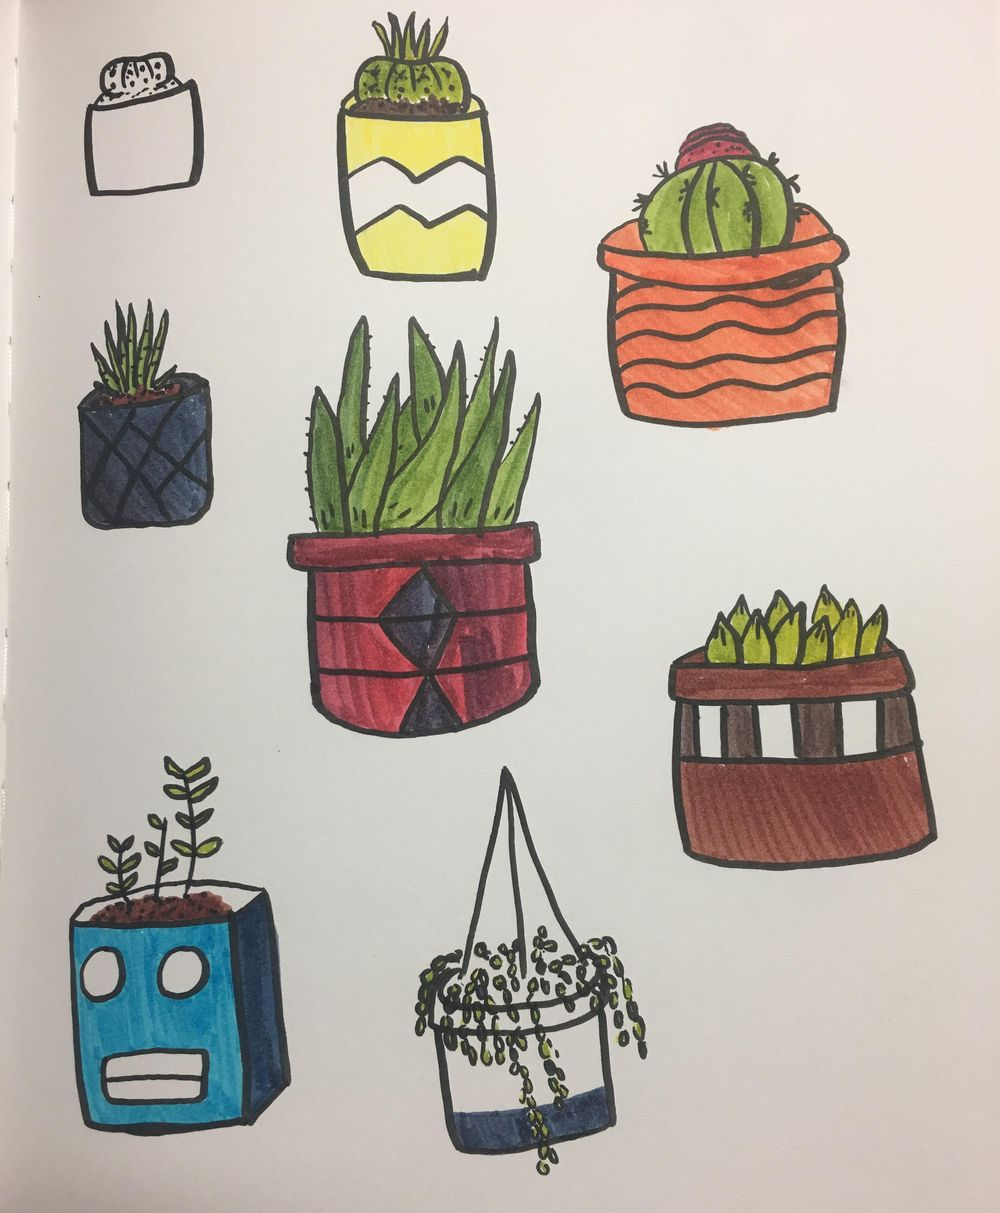 Cacti love - image 3 - student project